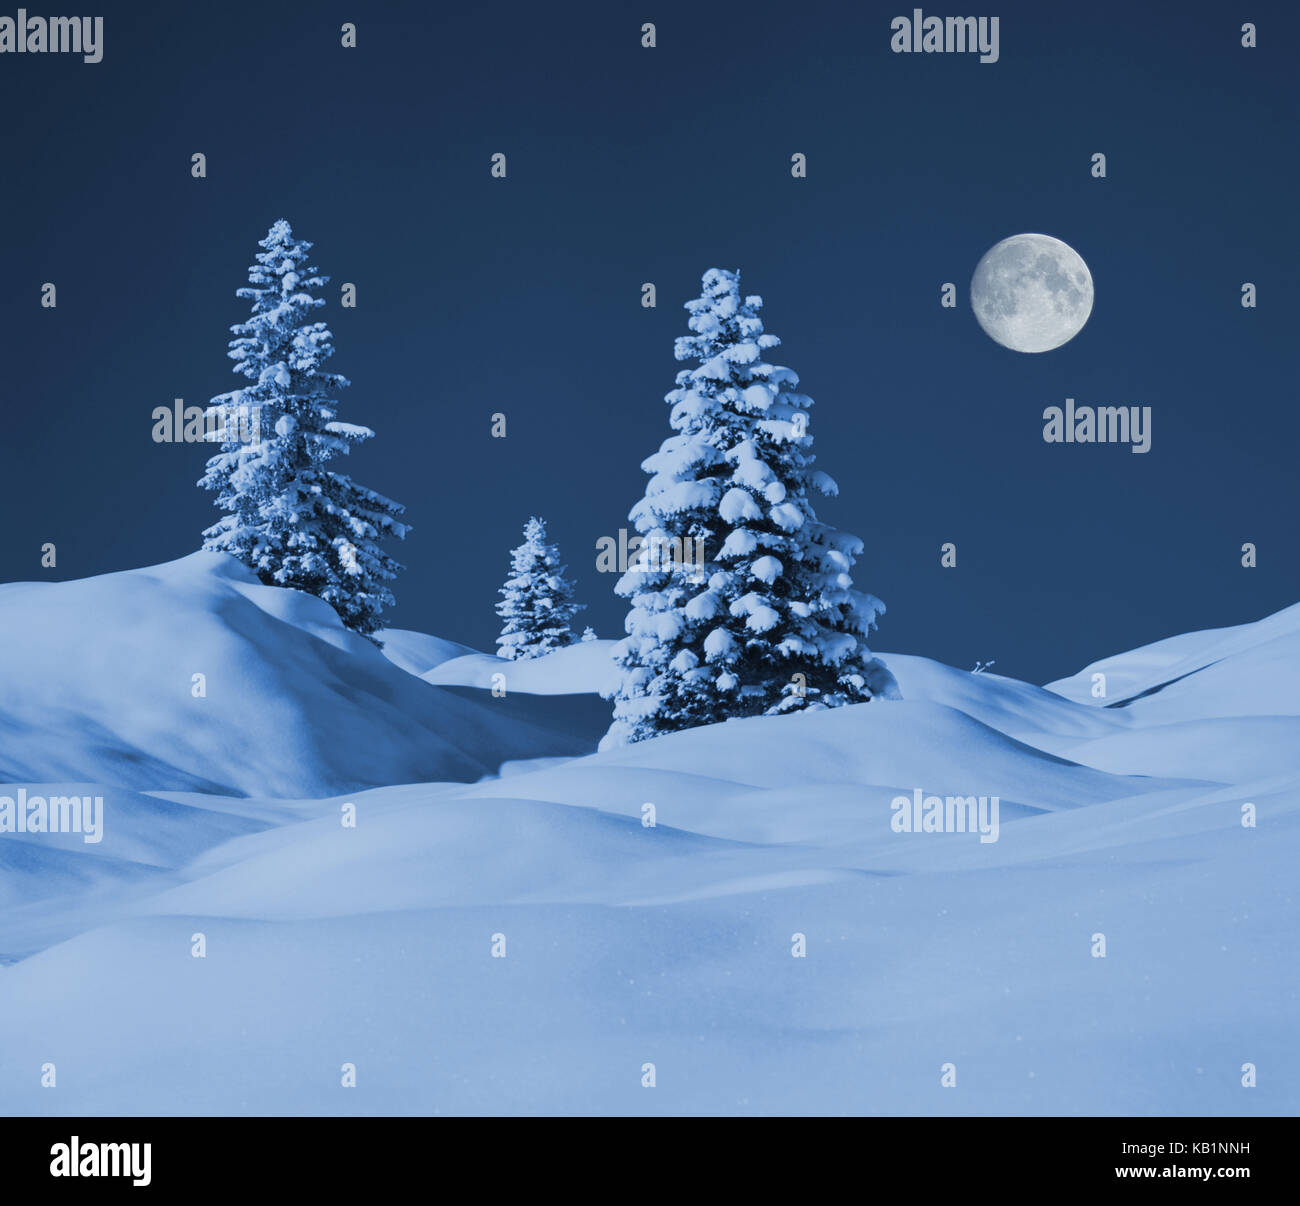 Winter scenery with three spruces, - Stock Image